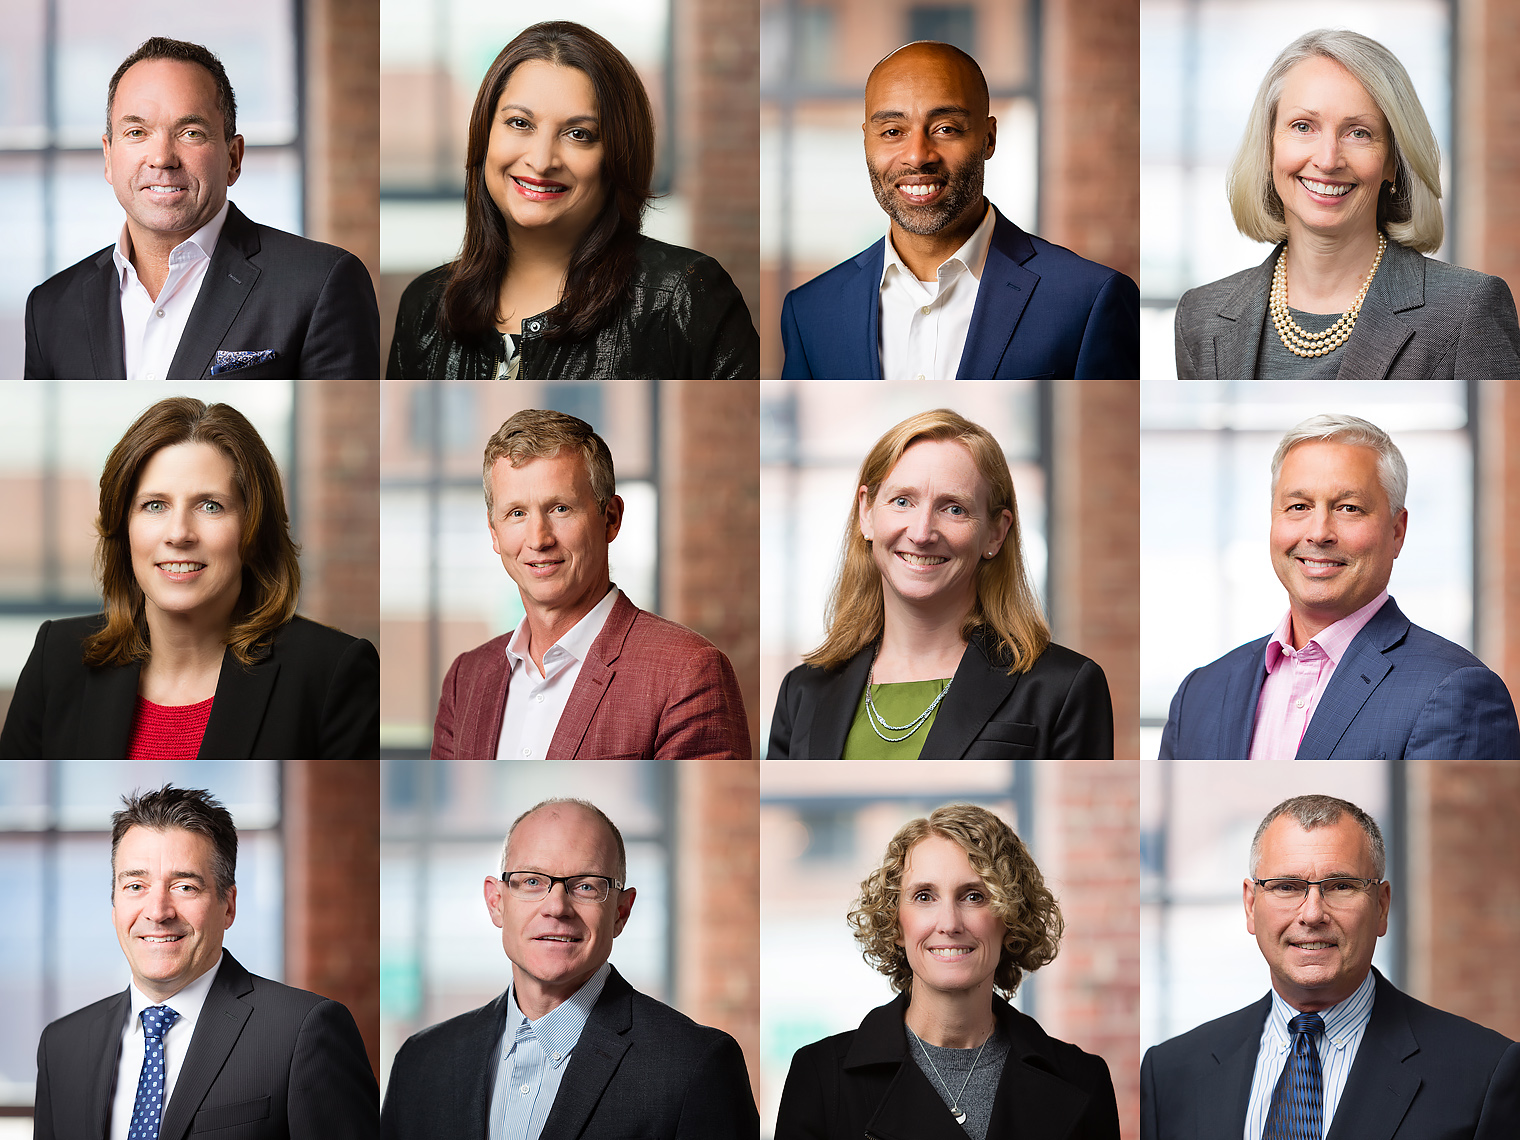 Sarepta Therapeutics Executive Headshots • Cambridge MA • Executive Headshots • Corporate Headshots • On-Site Headshots